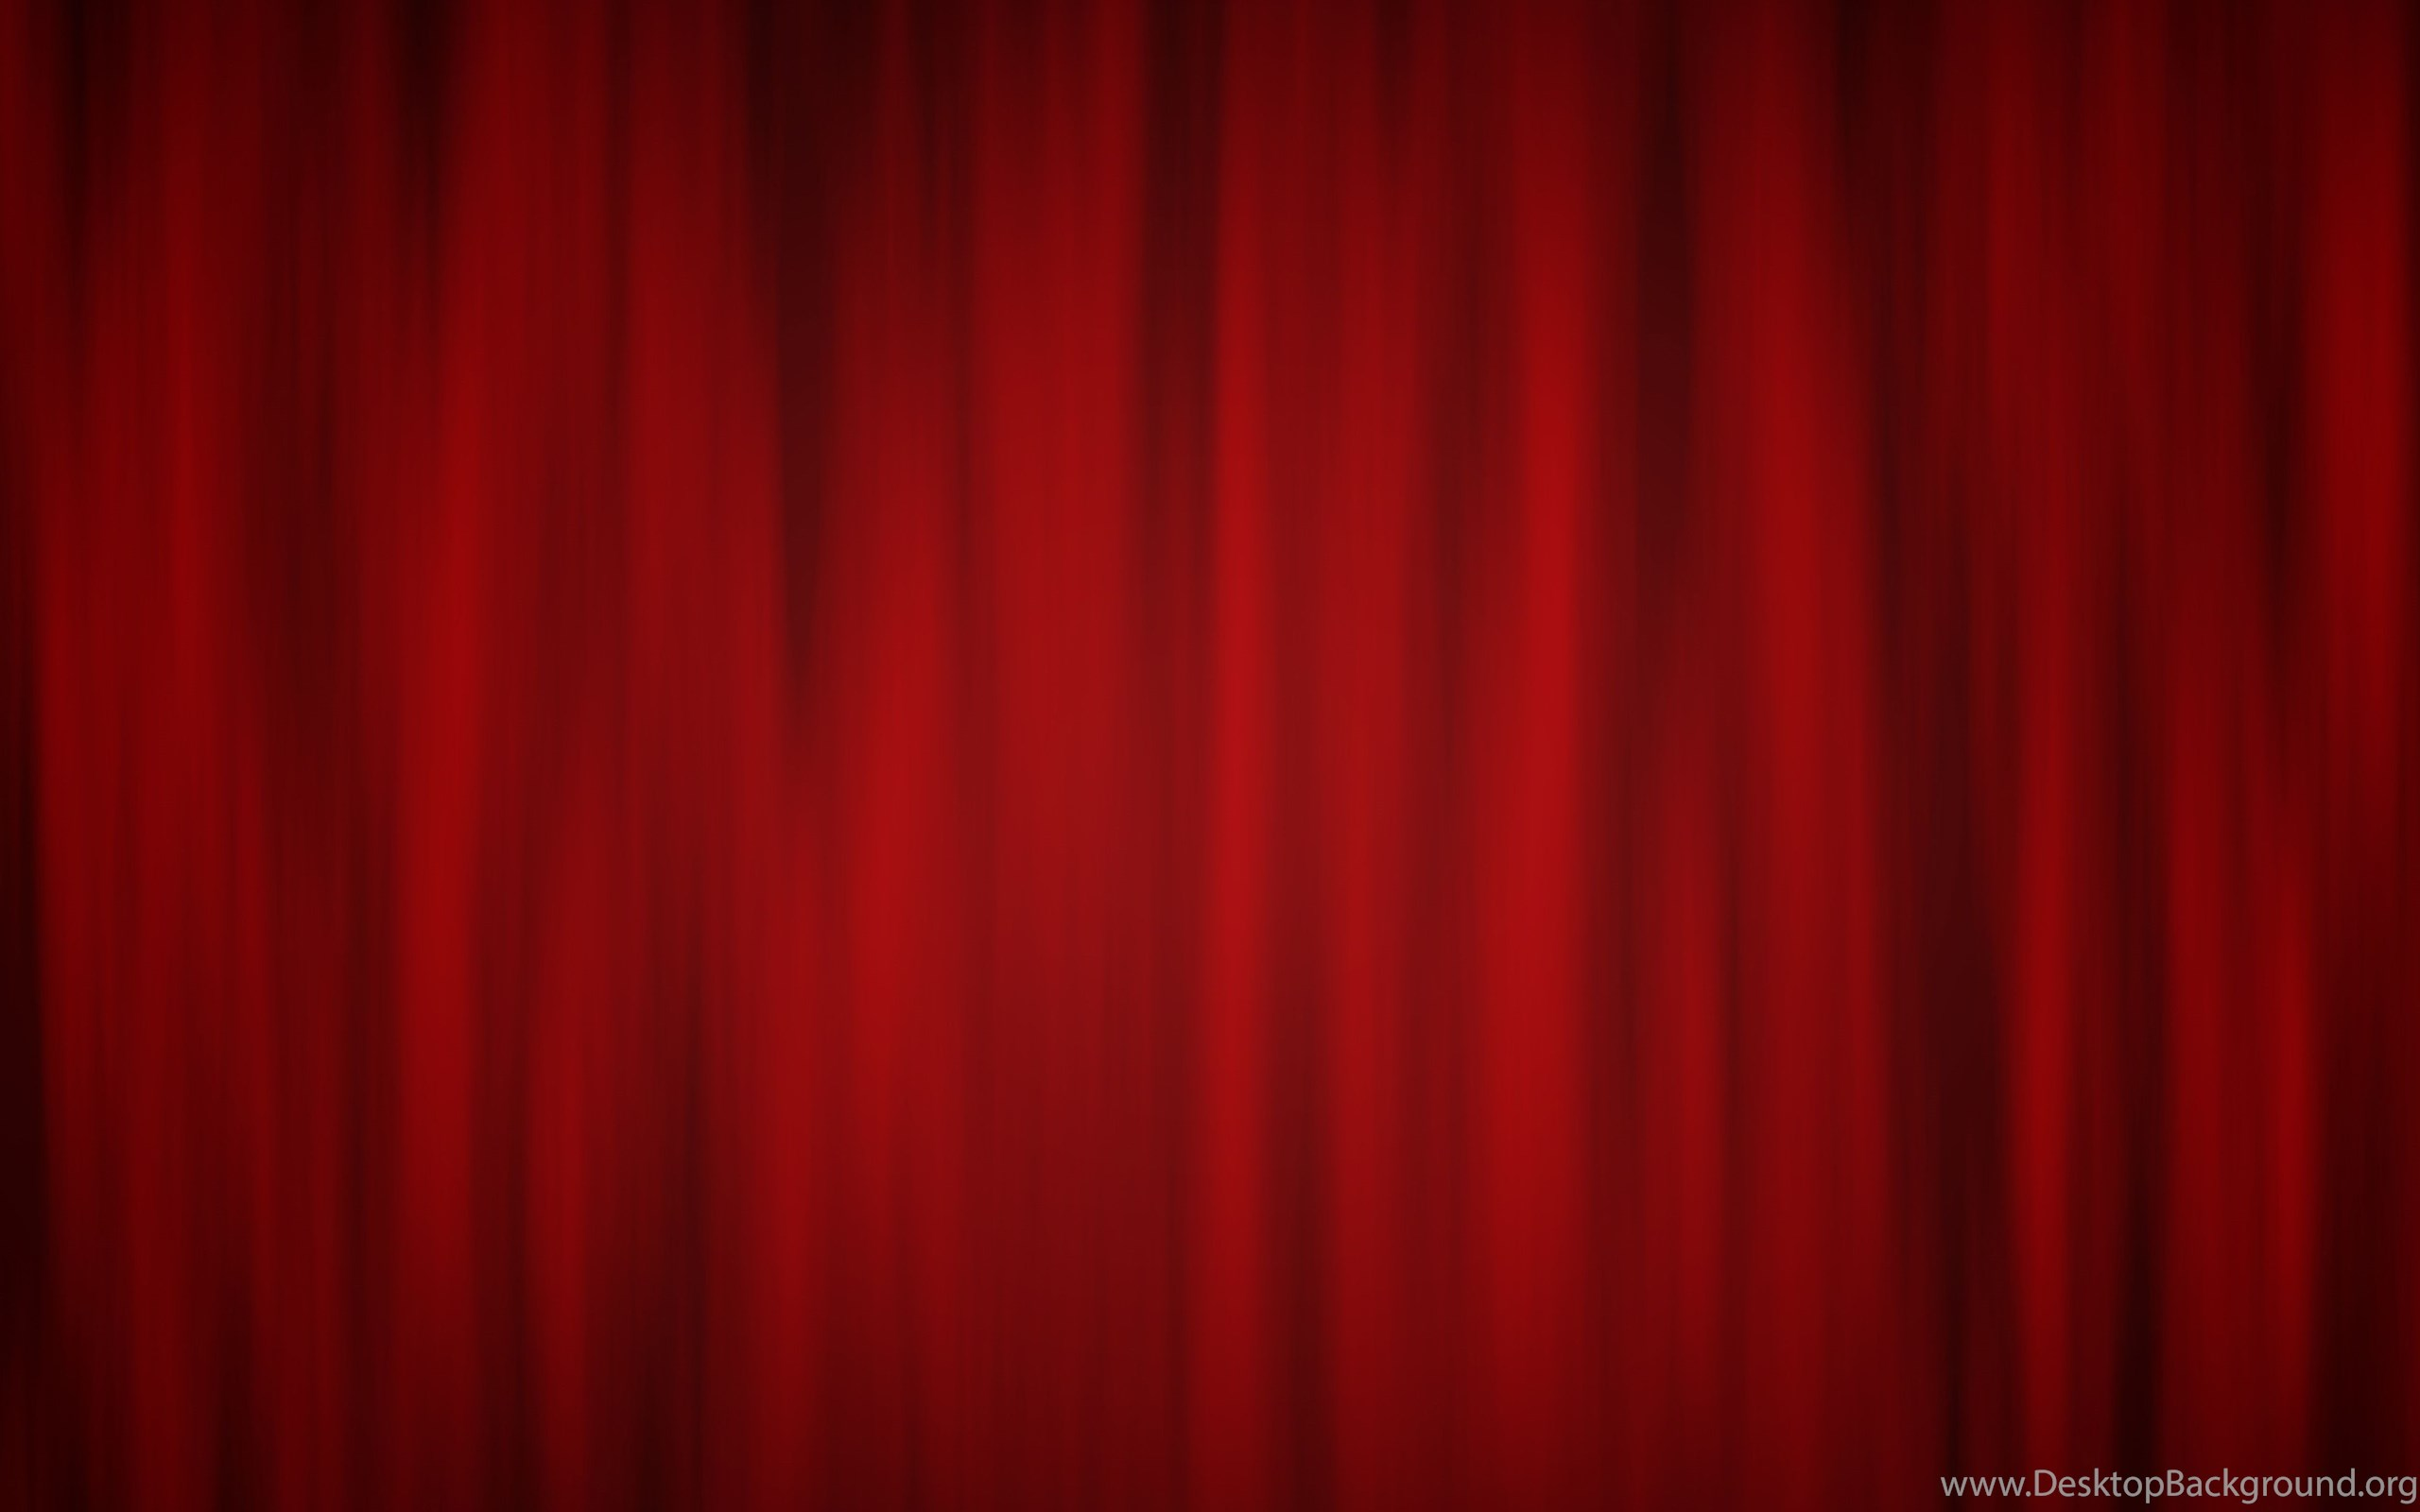 Download Texture Red Velvet Fabric Cloth Texture Backgrounds